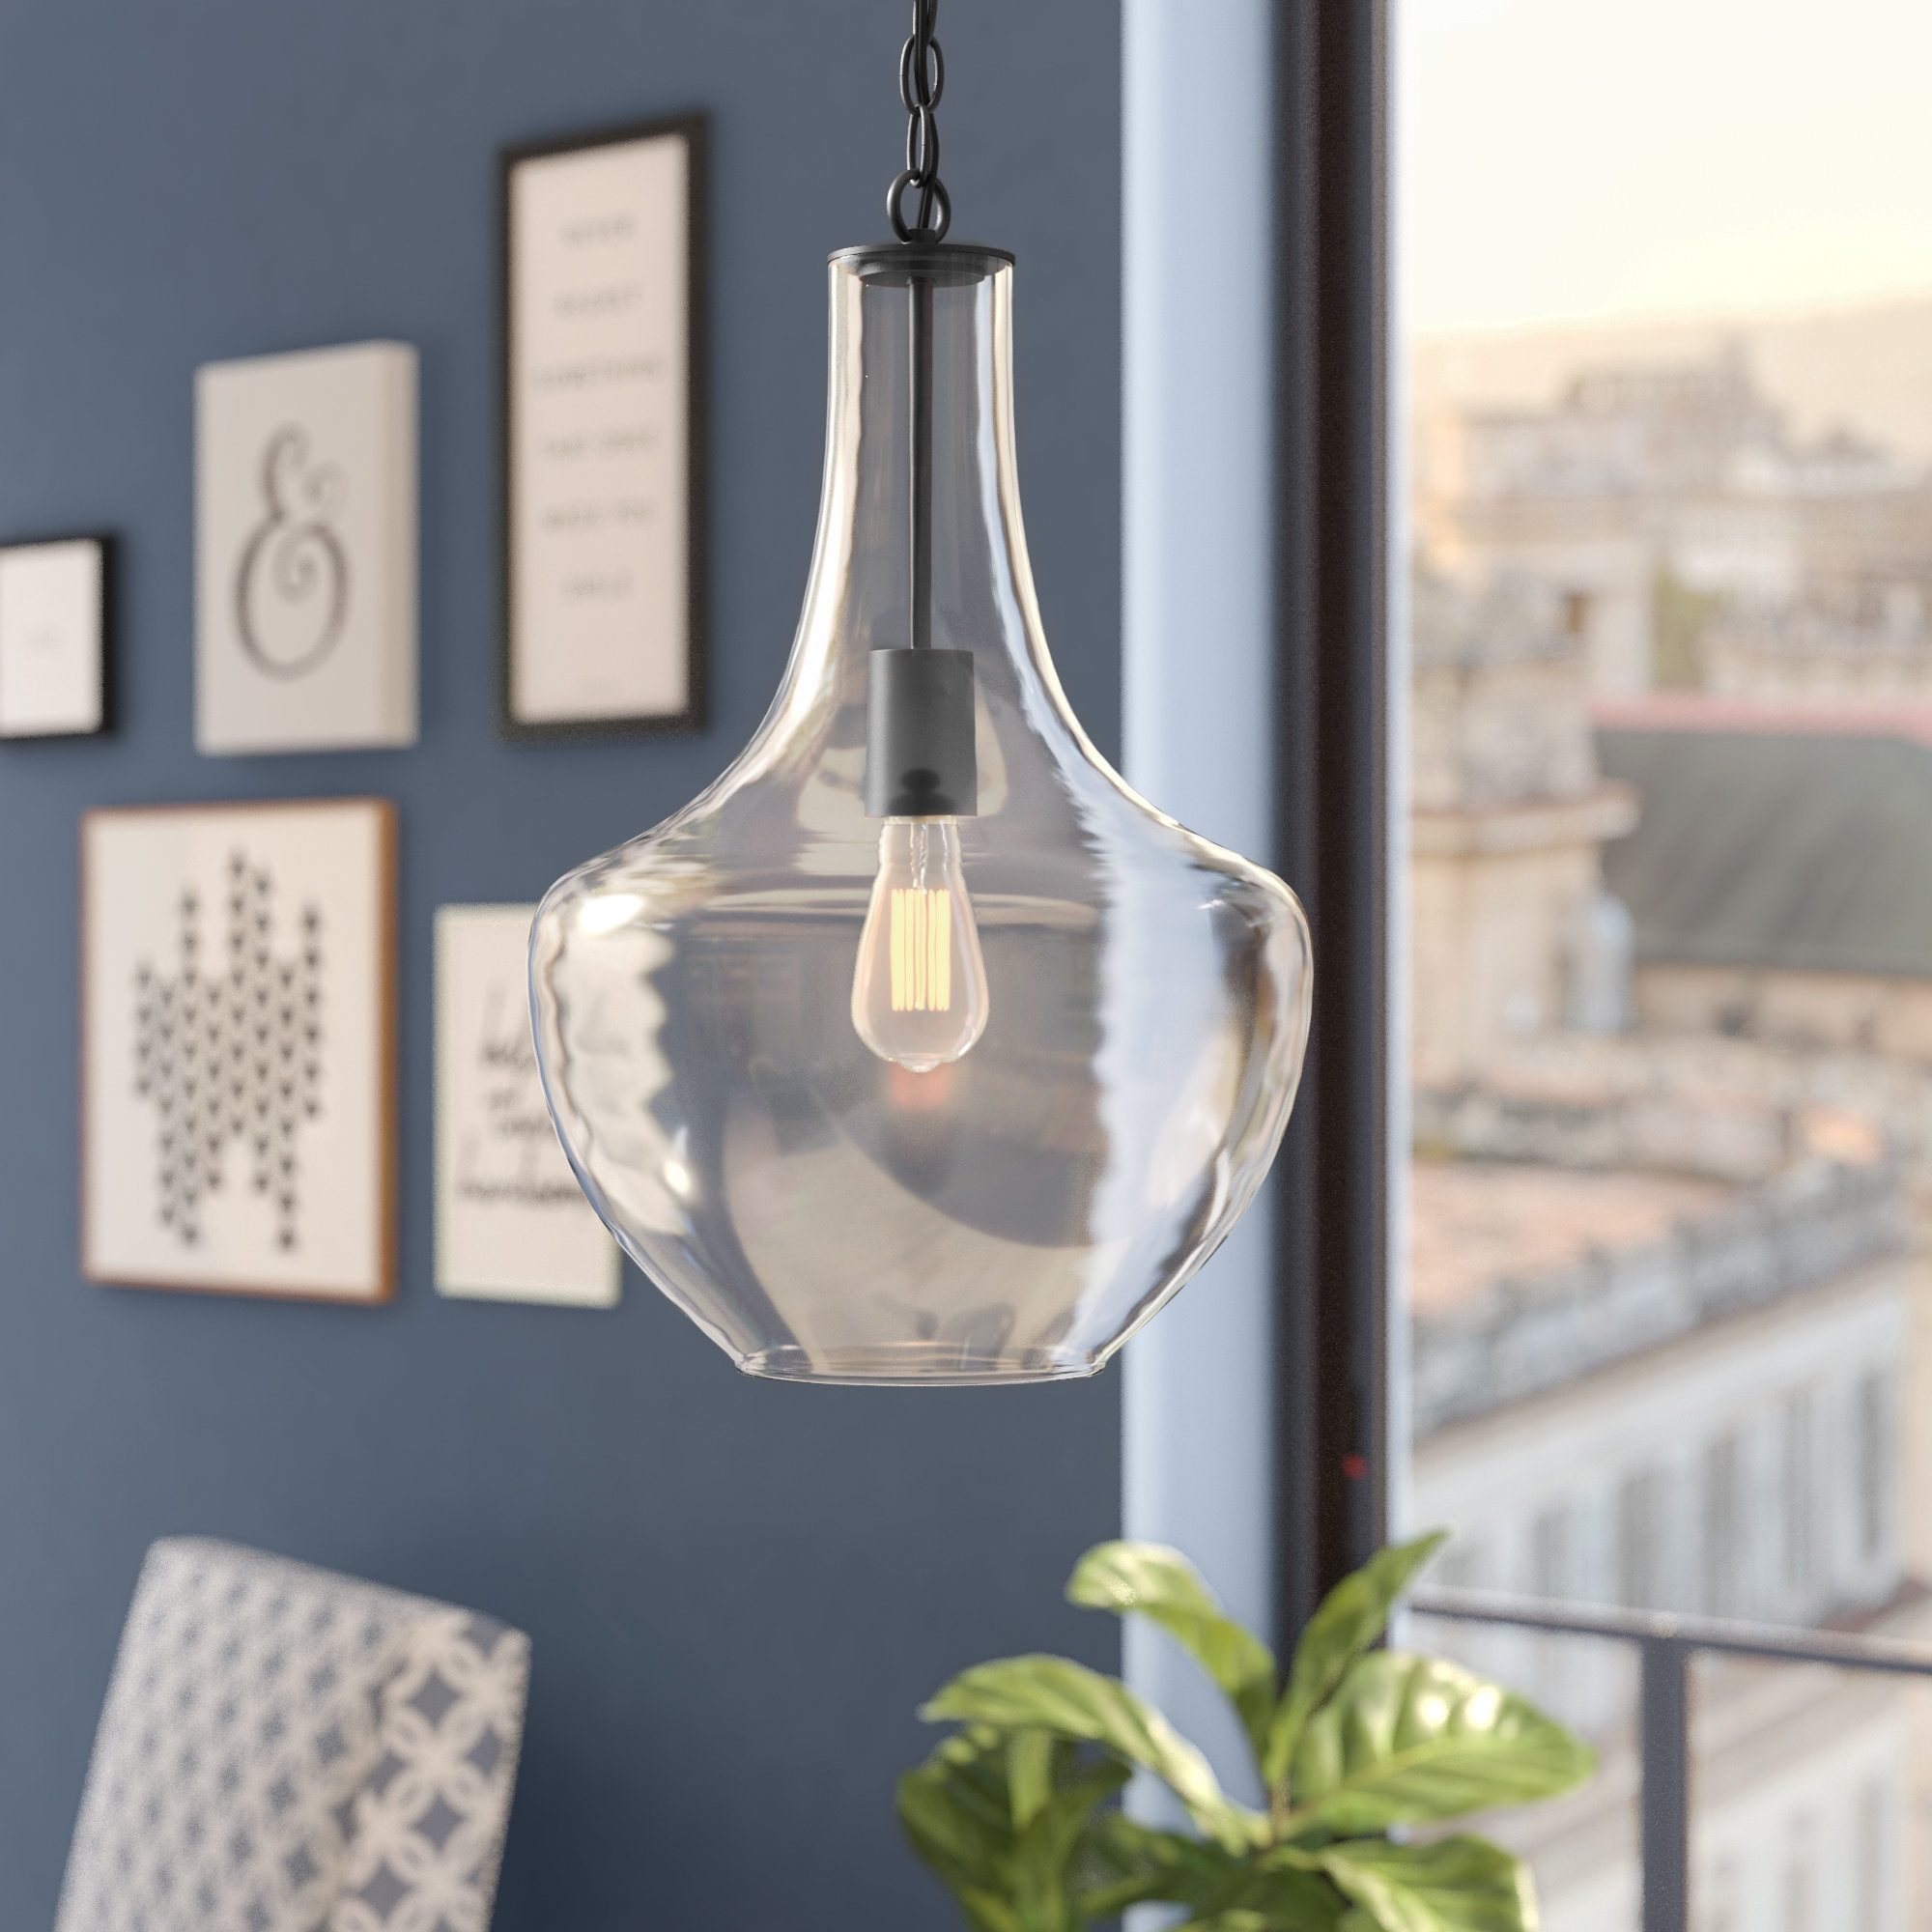 Brayden Studio Dunmore 1 Light Single Teardrop Pendant Throughout Neal 1 Light Single Teardrop Pendants (View 7 of 30)